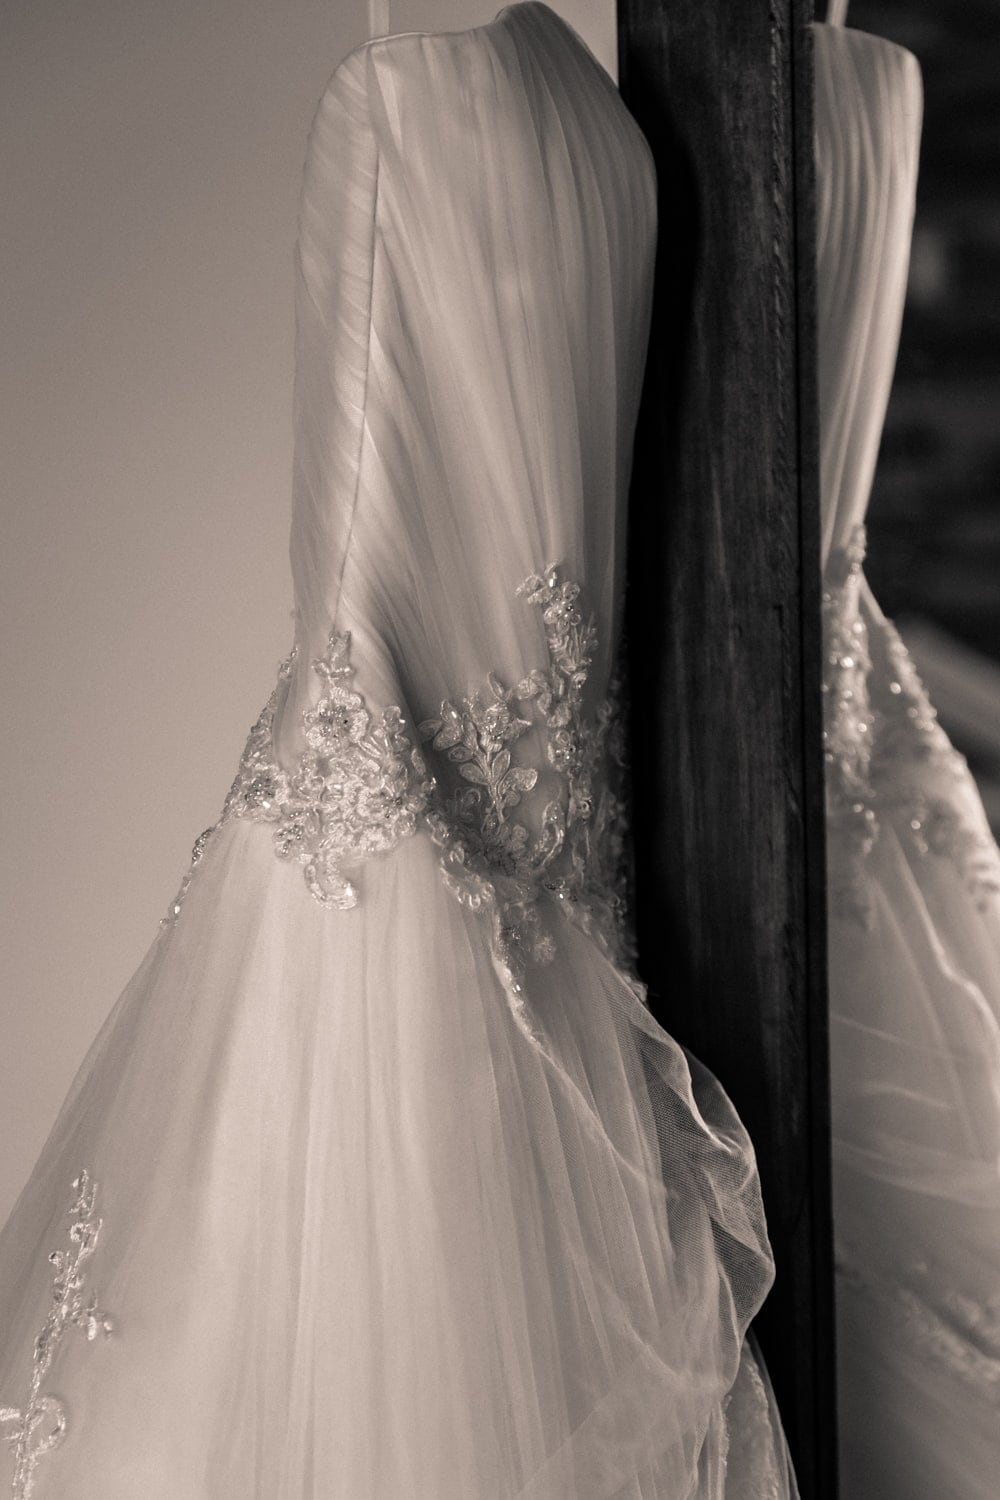 Photo of wedding dress handing from mirror during bridal preparation.